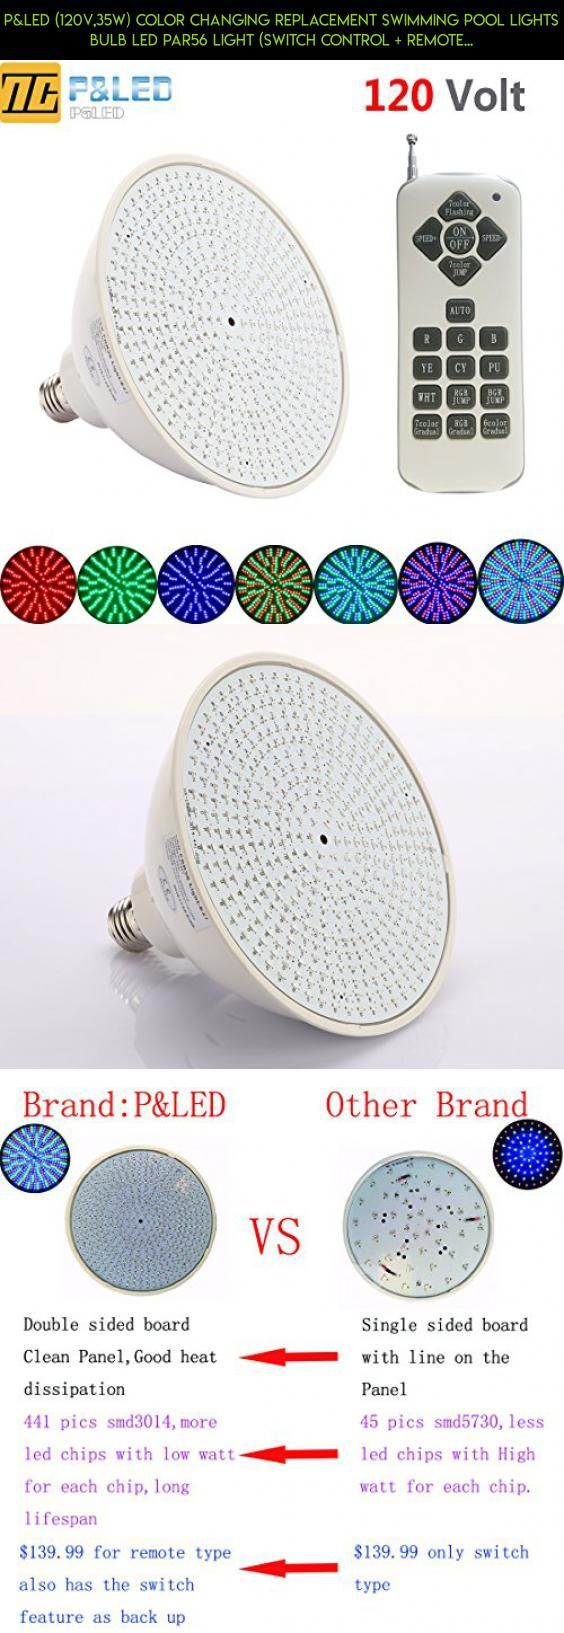 Pled 120v35w color changing replacement swimming pool lights pled 120v35w color changing replacement swimming pool lights bulb led par56 light arubaitofo Image collections